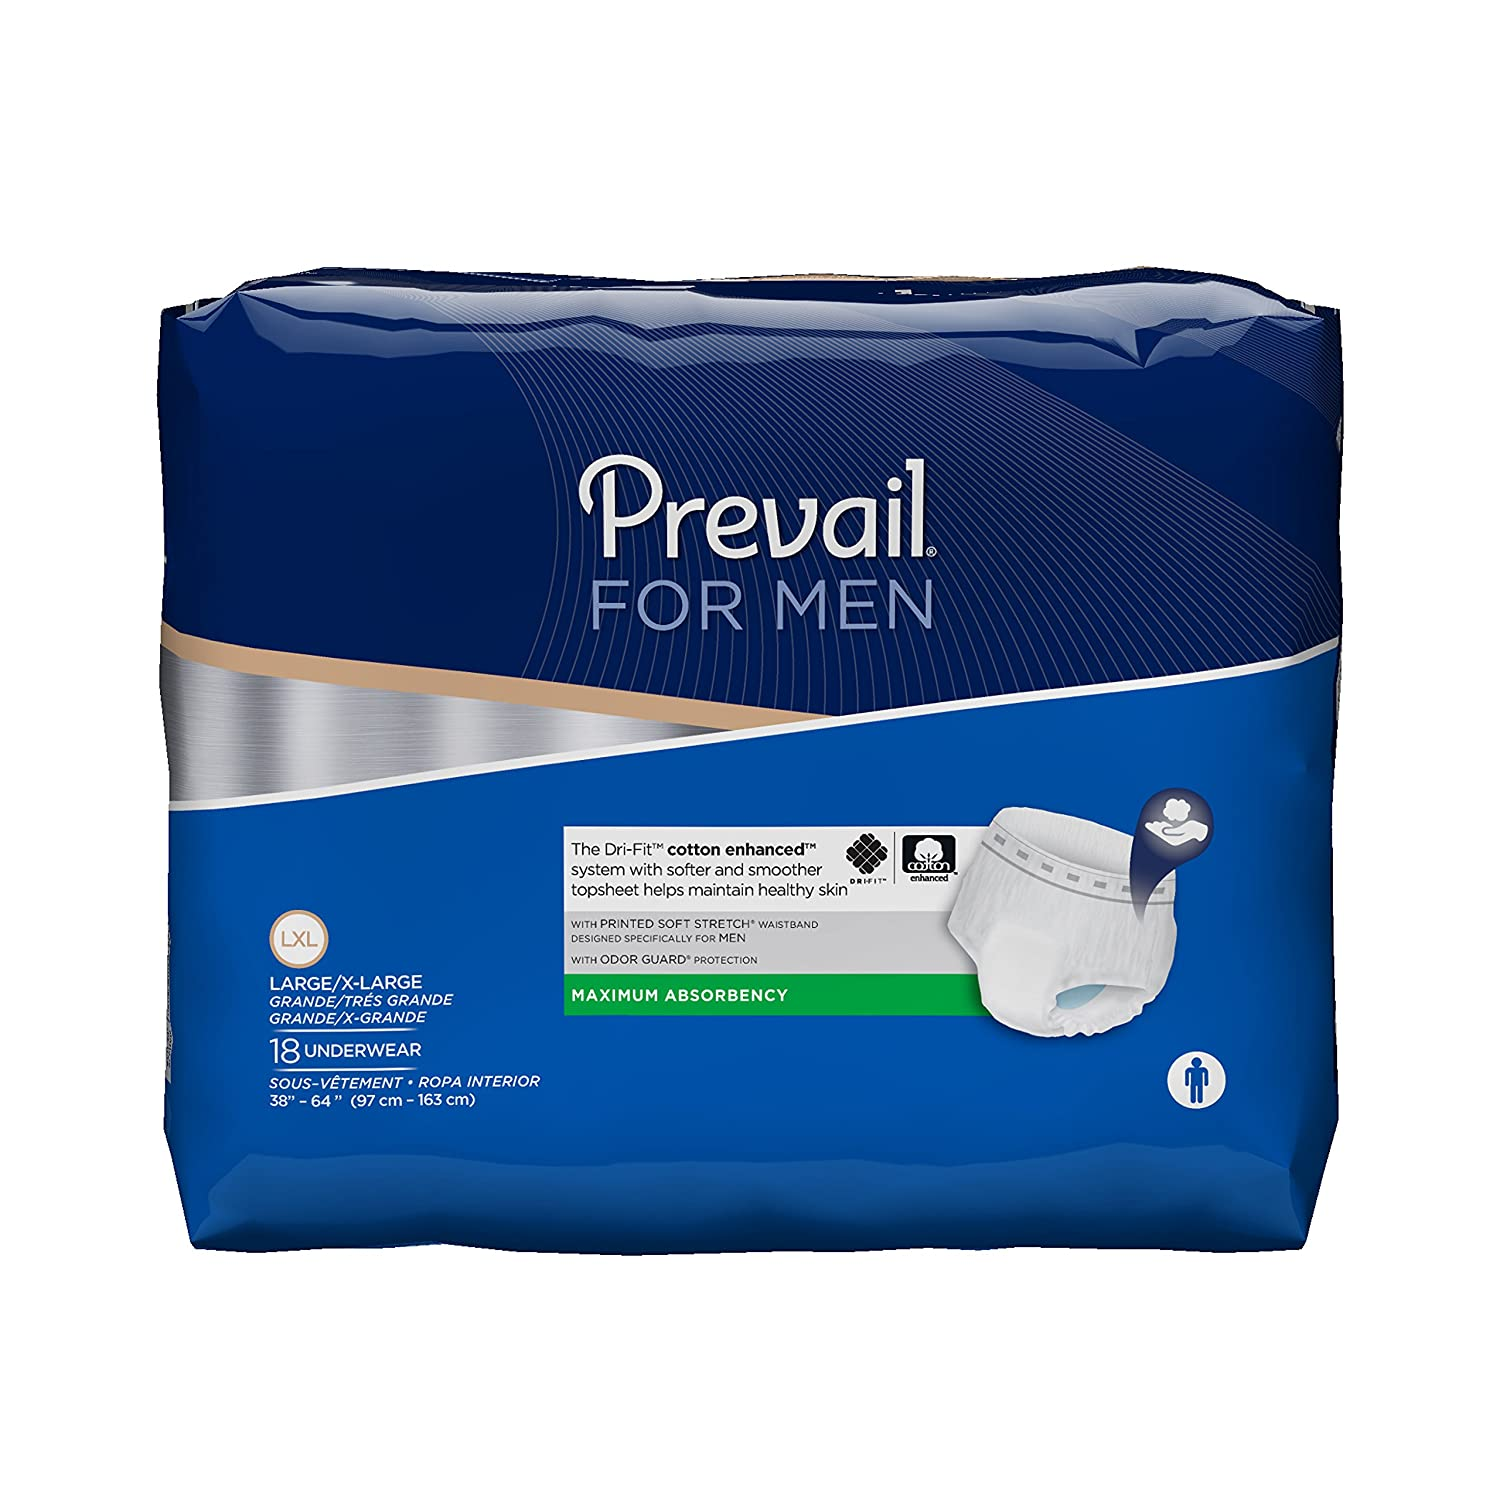 Amazon.com: Prevail Maximum Absorbency Incontinence Underwear for Men, Small/Medium, 18-Count (Pack of 4): Health & Personal Care